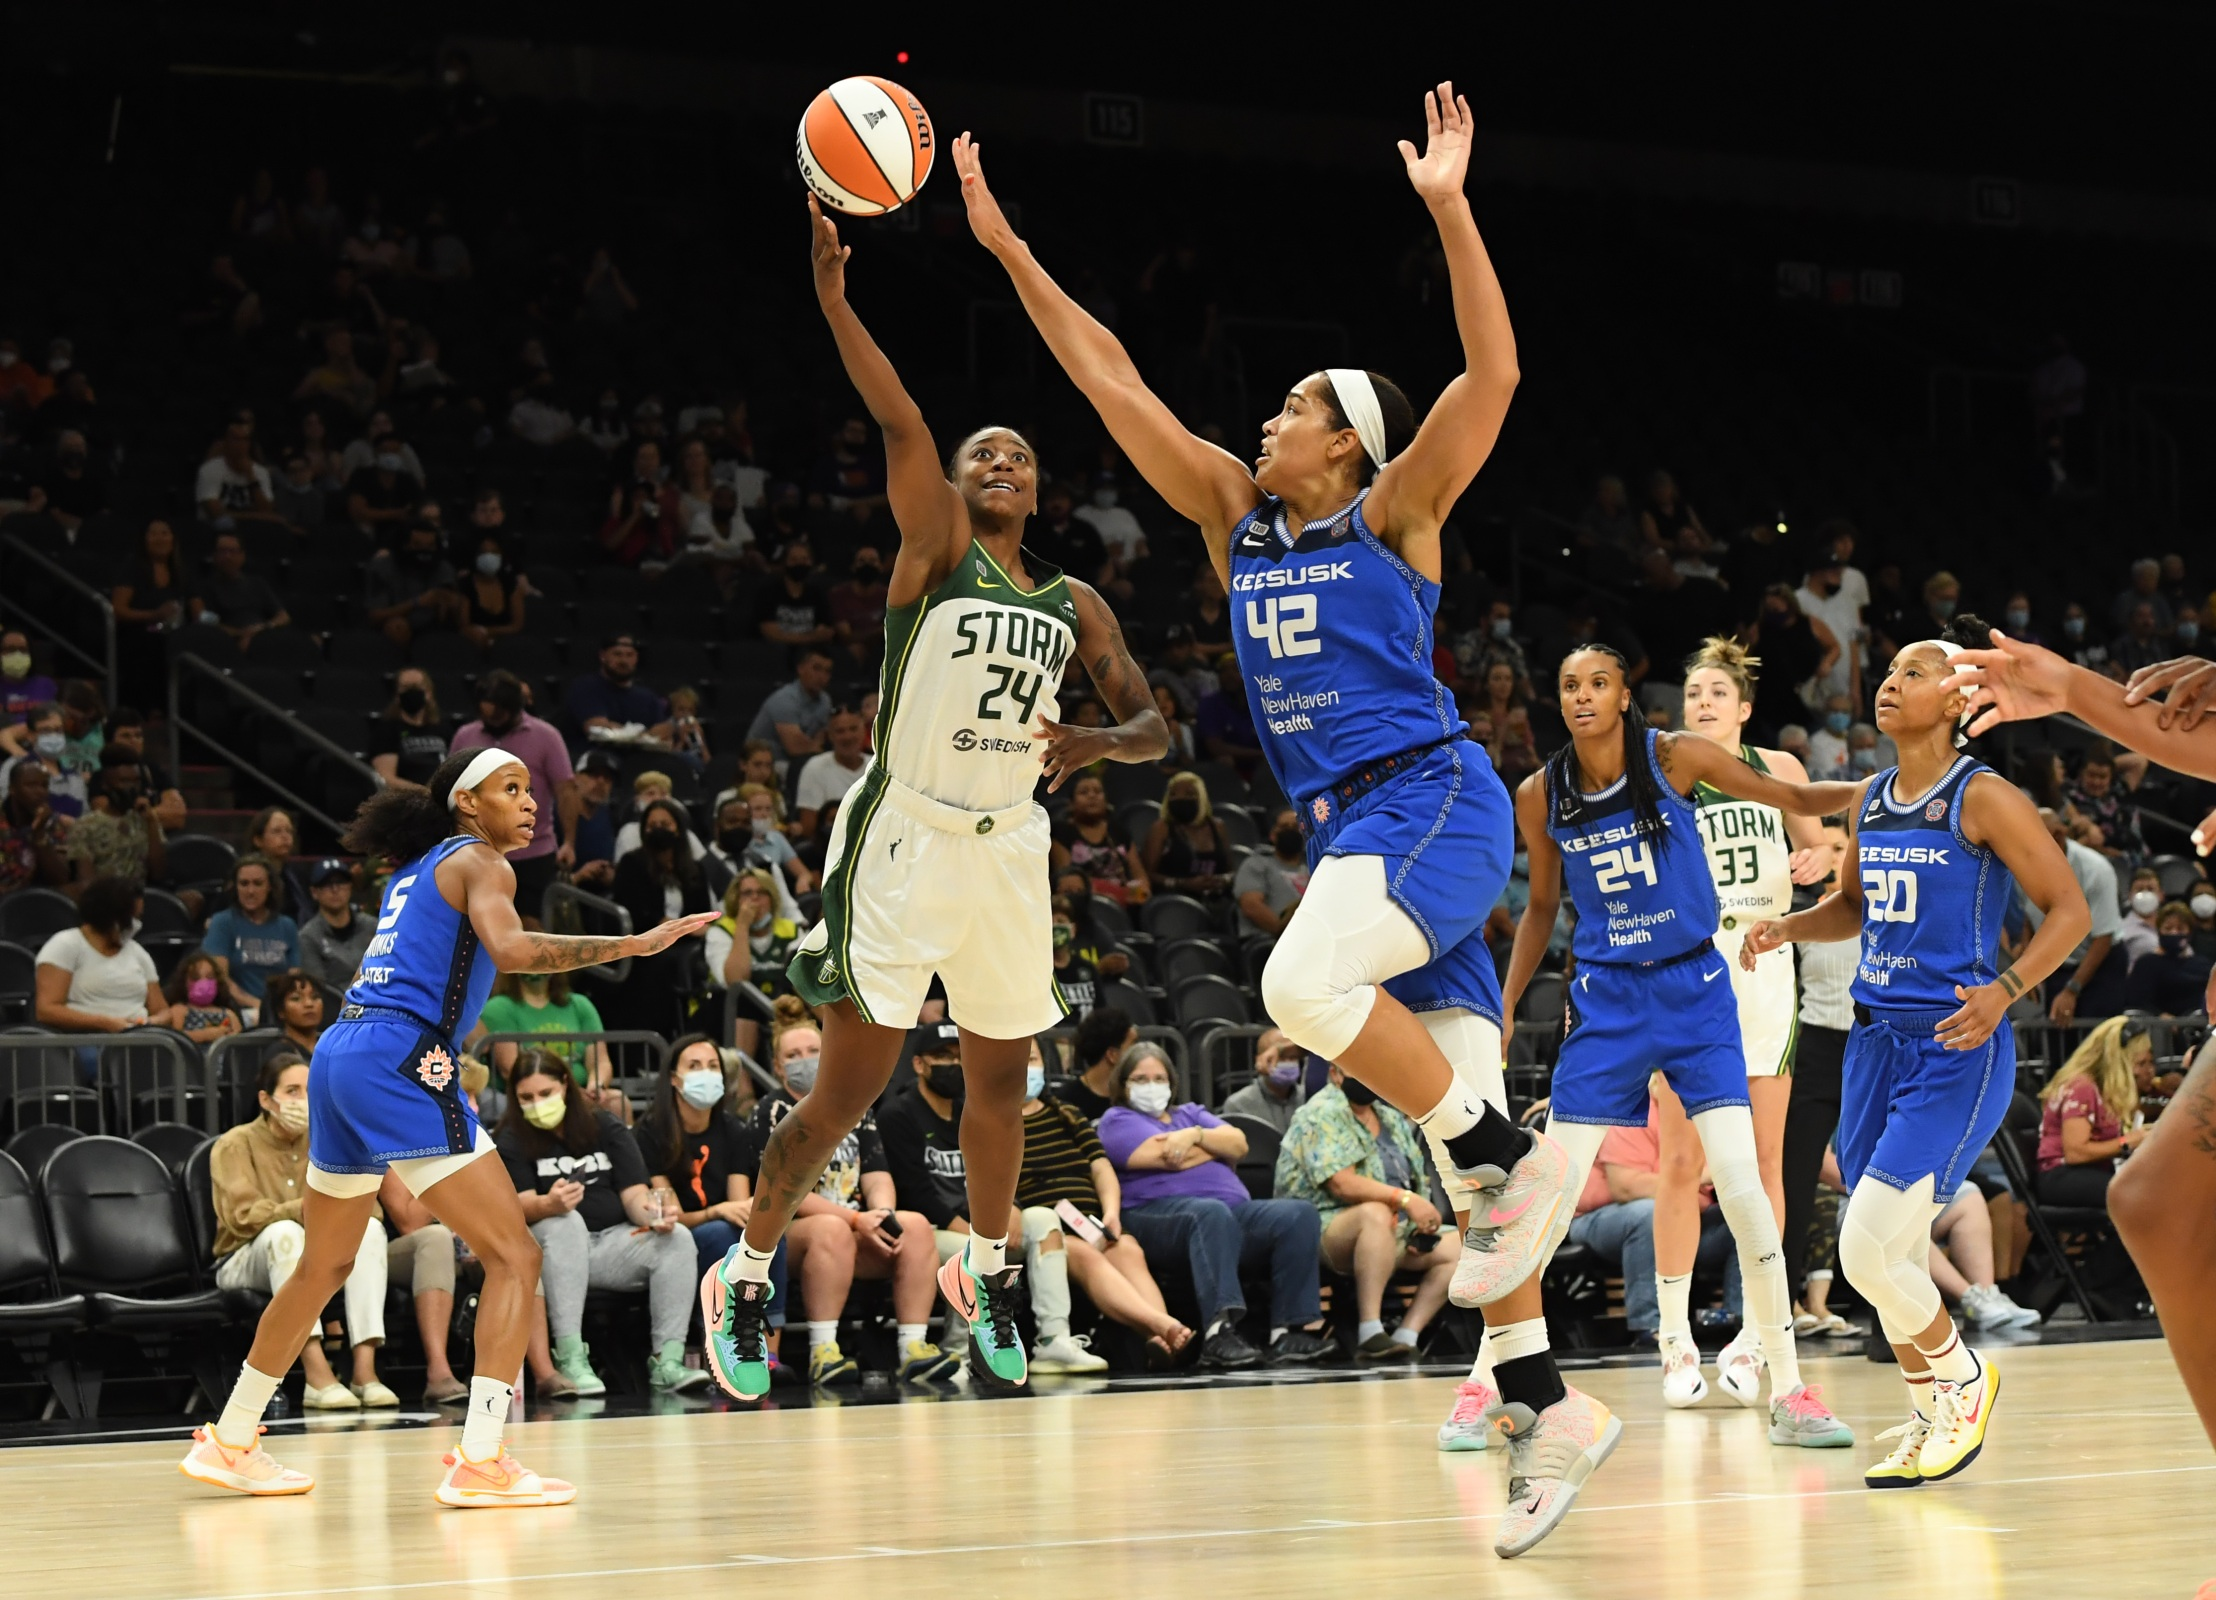 Jewell Loyd #24 of the Seattle Storm attempts a layup while being defended by Brionna Jones #42 of the Connecticut Sun during the first half of the 2021 Commissioner's Cup Championship Game at Footprint Center on August 12, 2021 in Phoenix, Arizona.